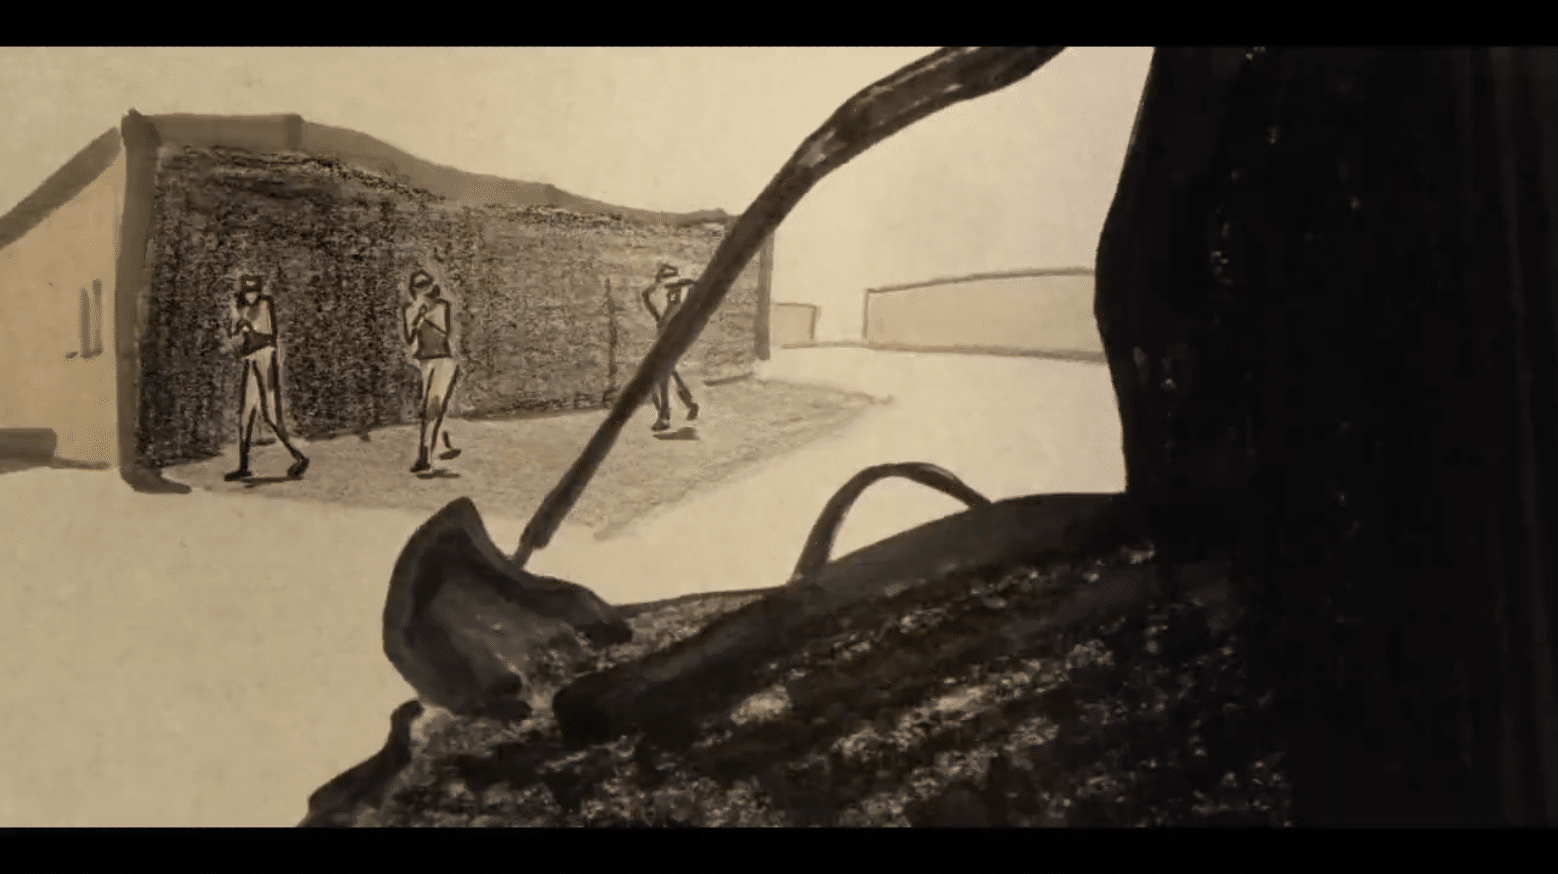 Confusion Through Sand – An Experimental Video on Recycled Paper